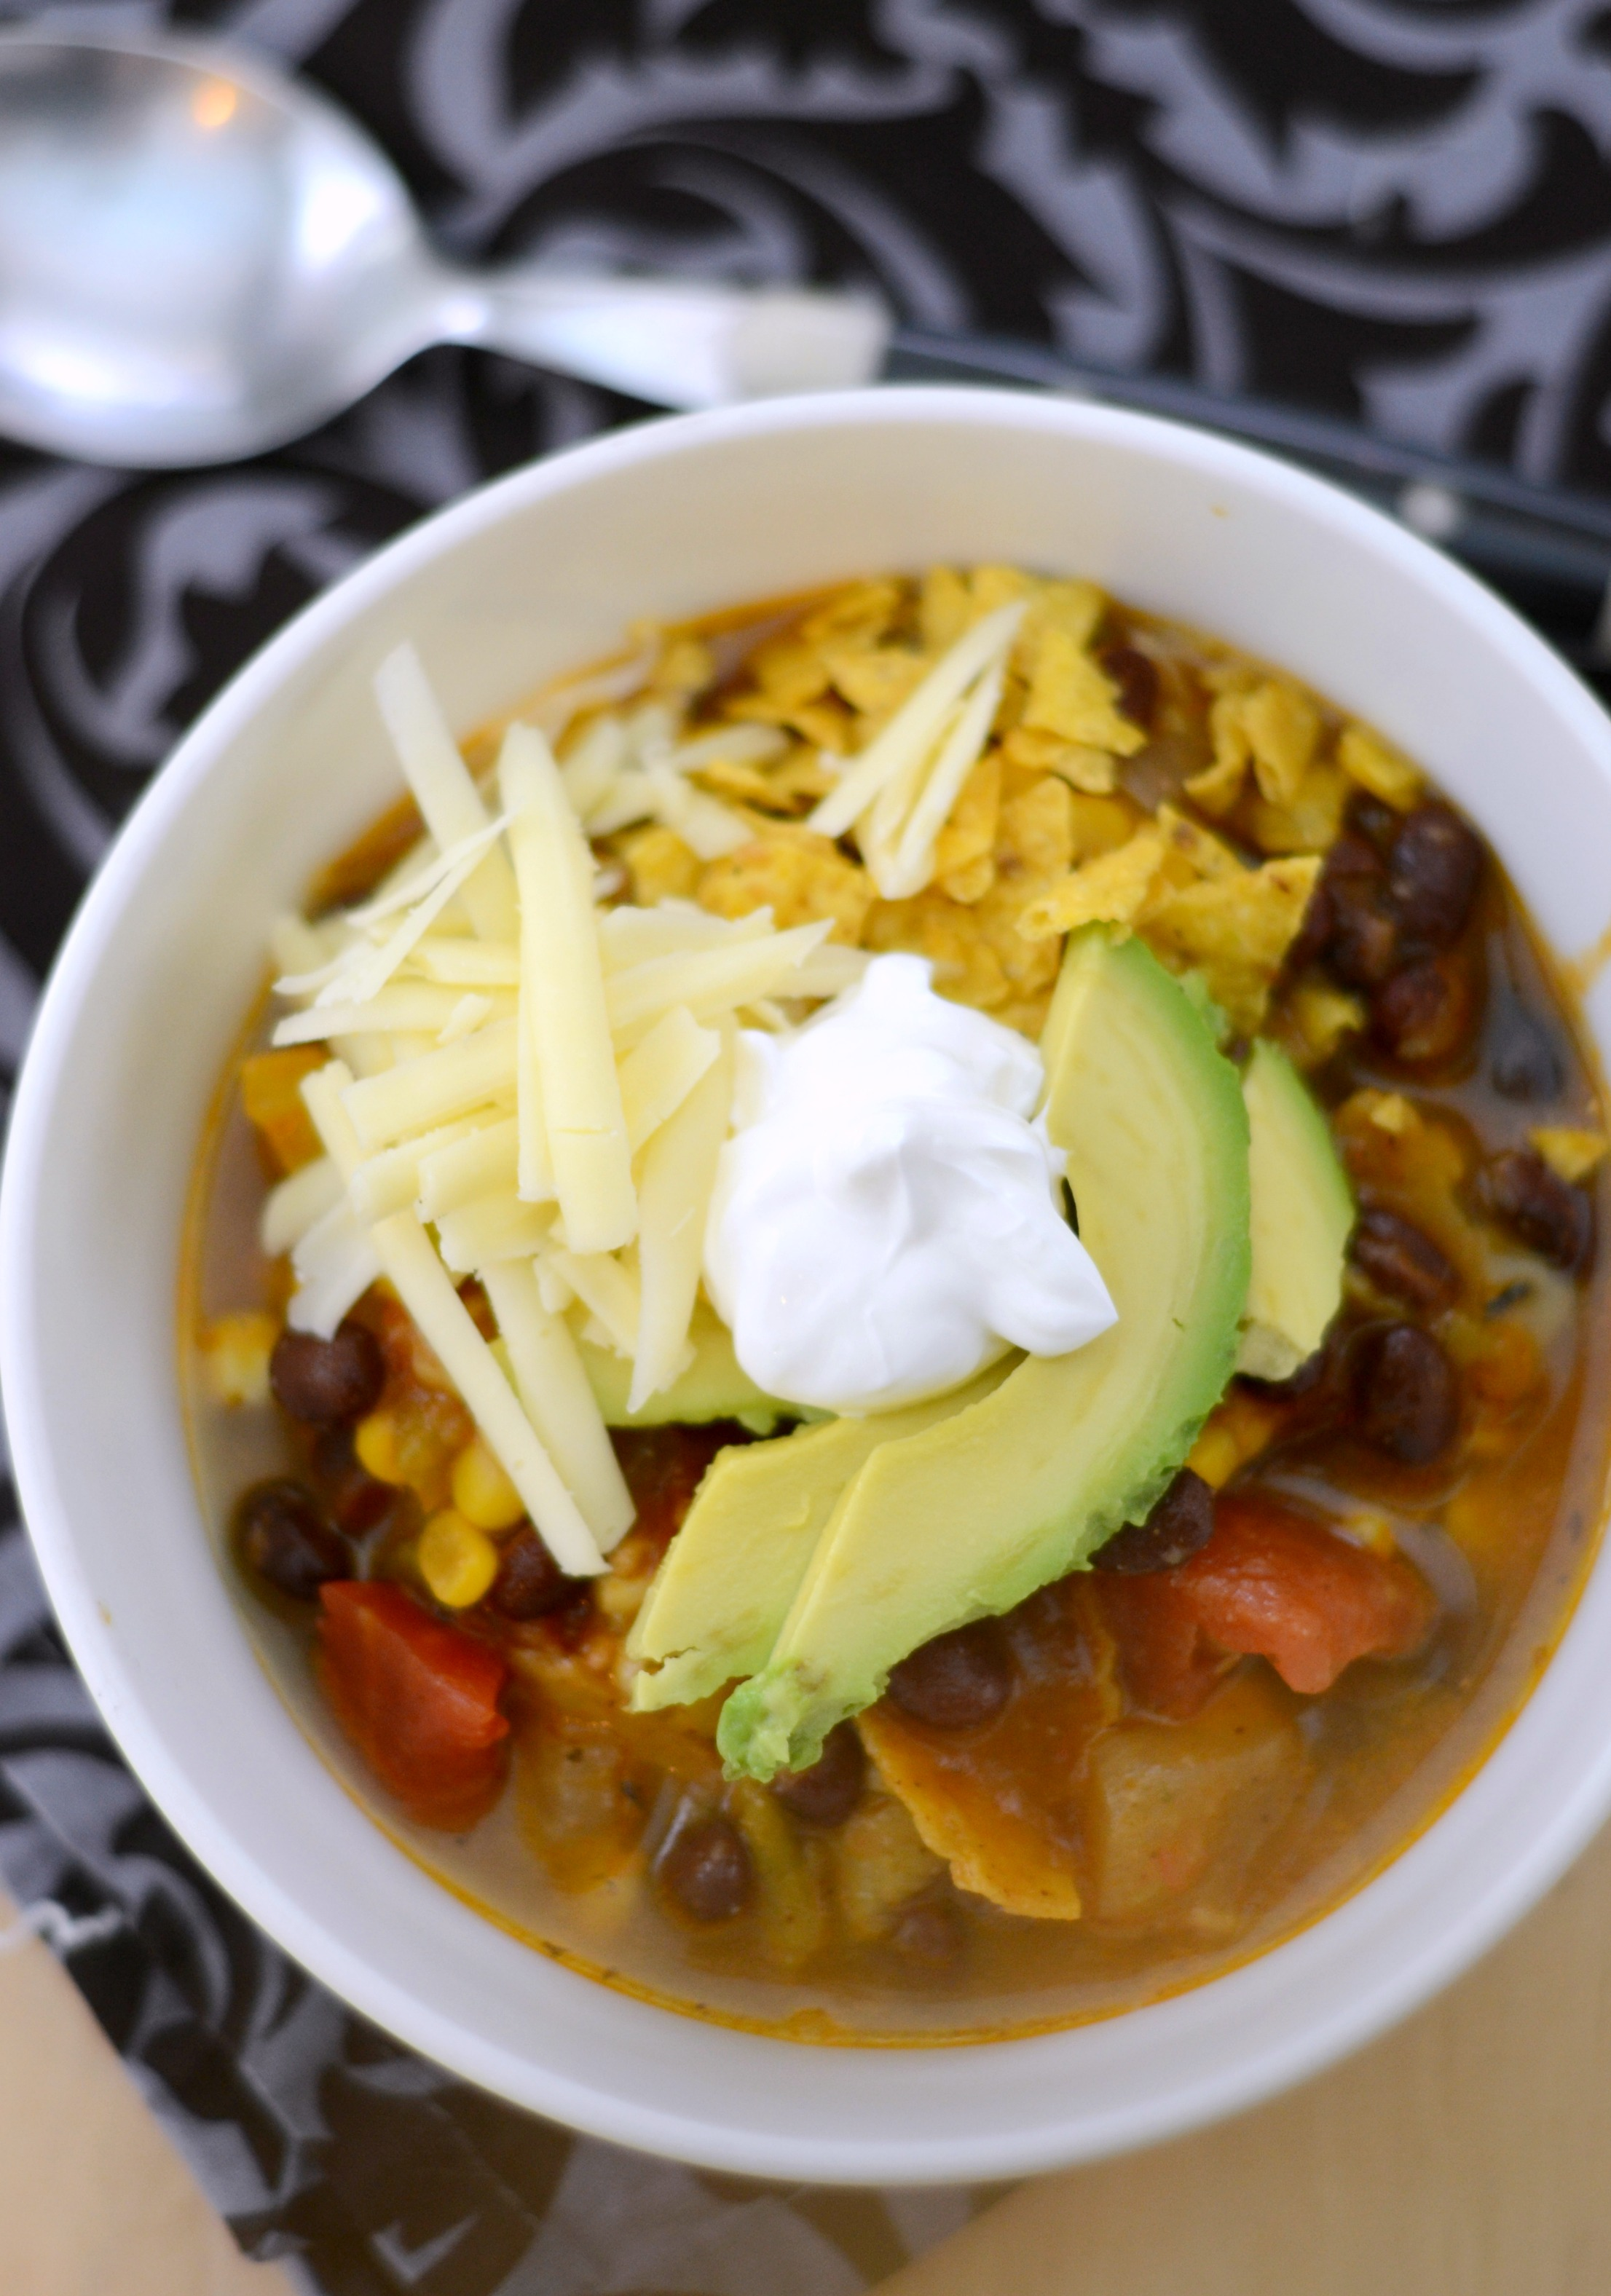 Overhead view of a bowl of vegetarian tortilla soup topped with sour cream, cheese and avocados